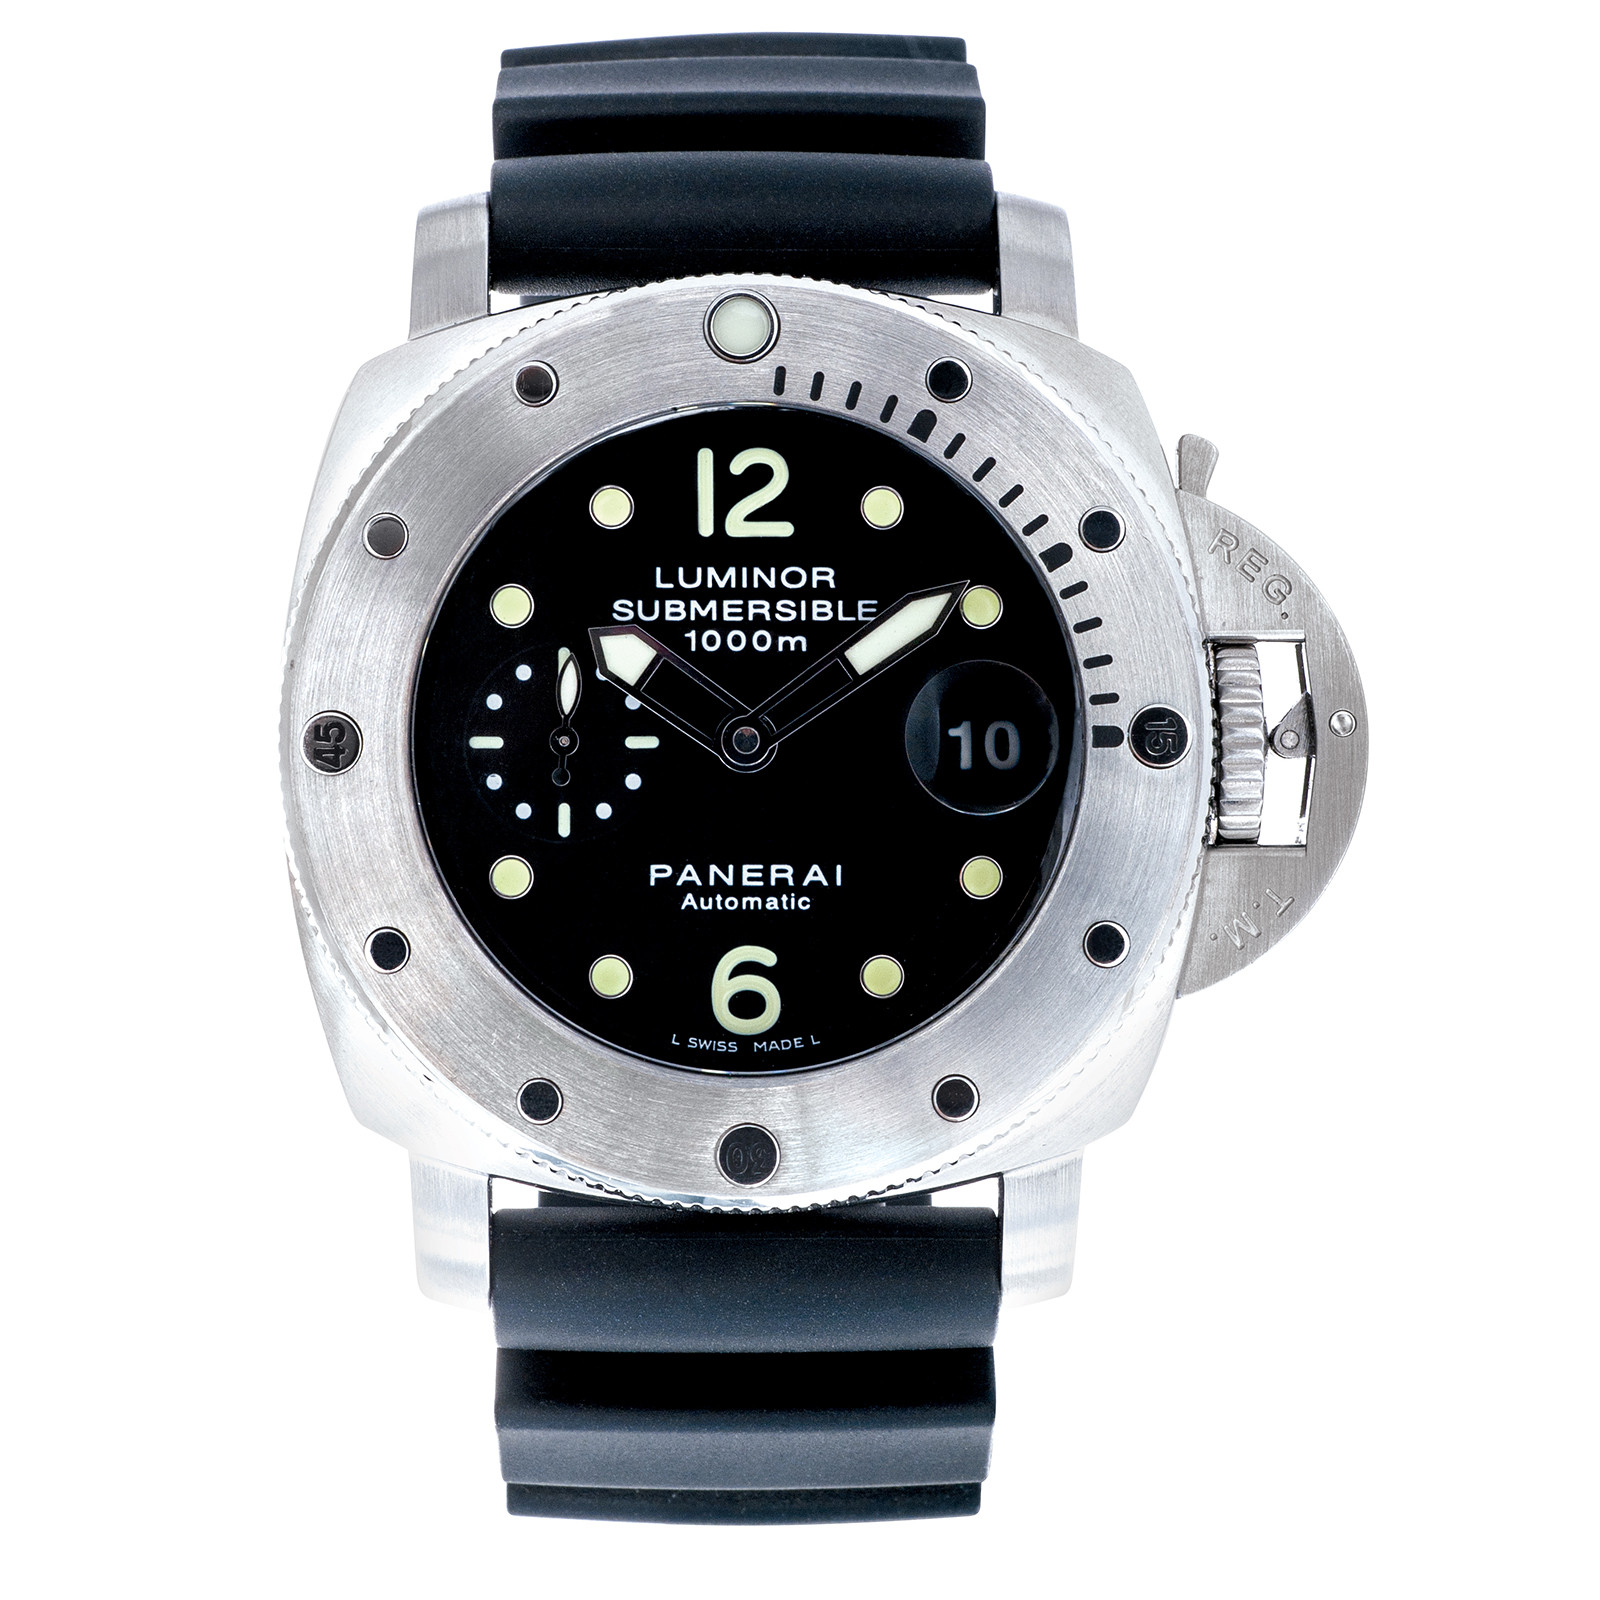 Preowned Panerai Luminor 1950 Submersible